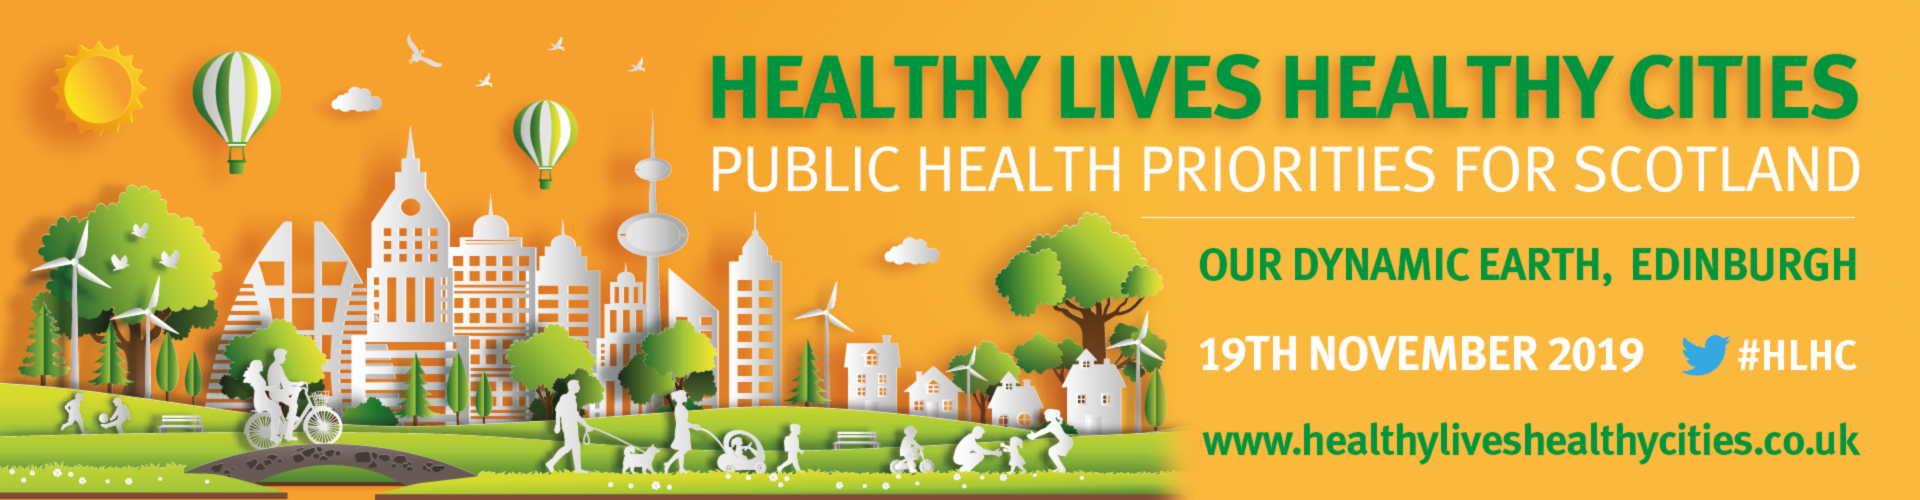 Healthy Lives Healthy Cities - Public Health Priorities for